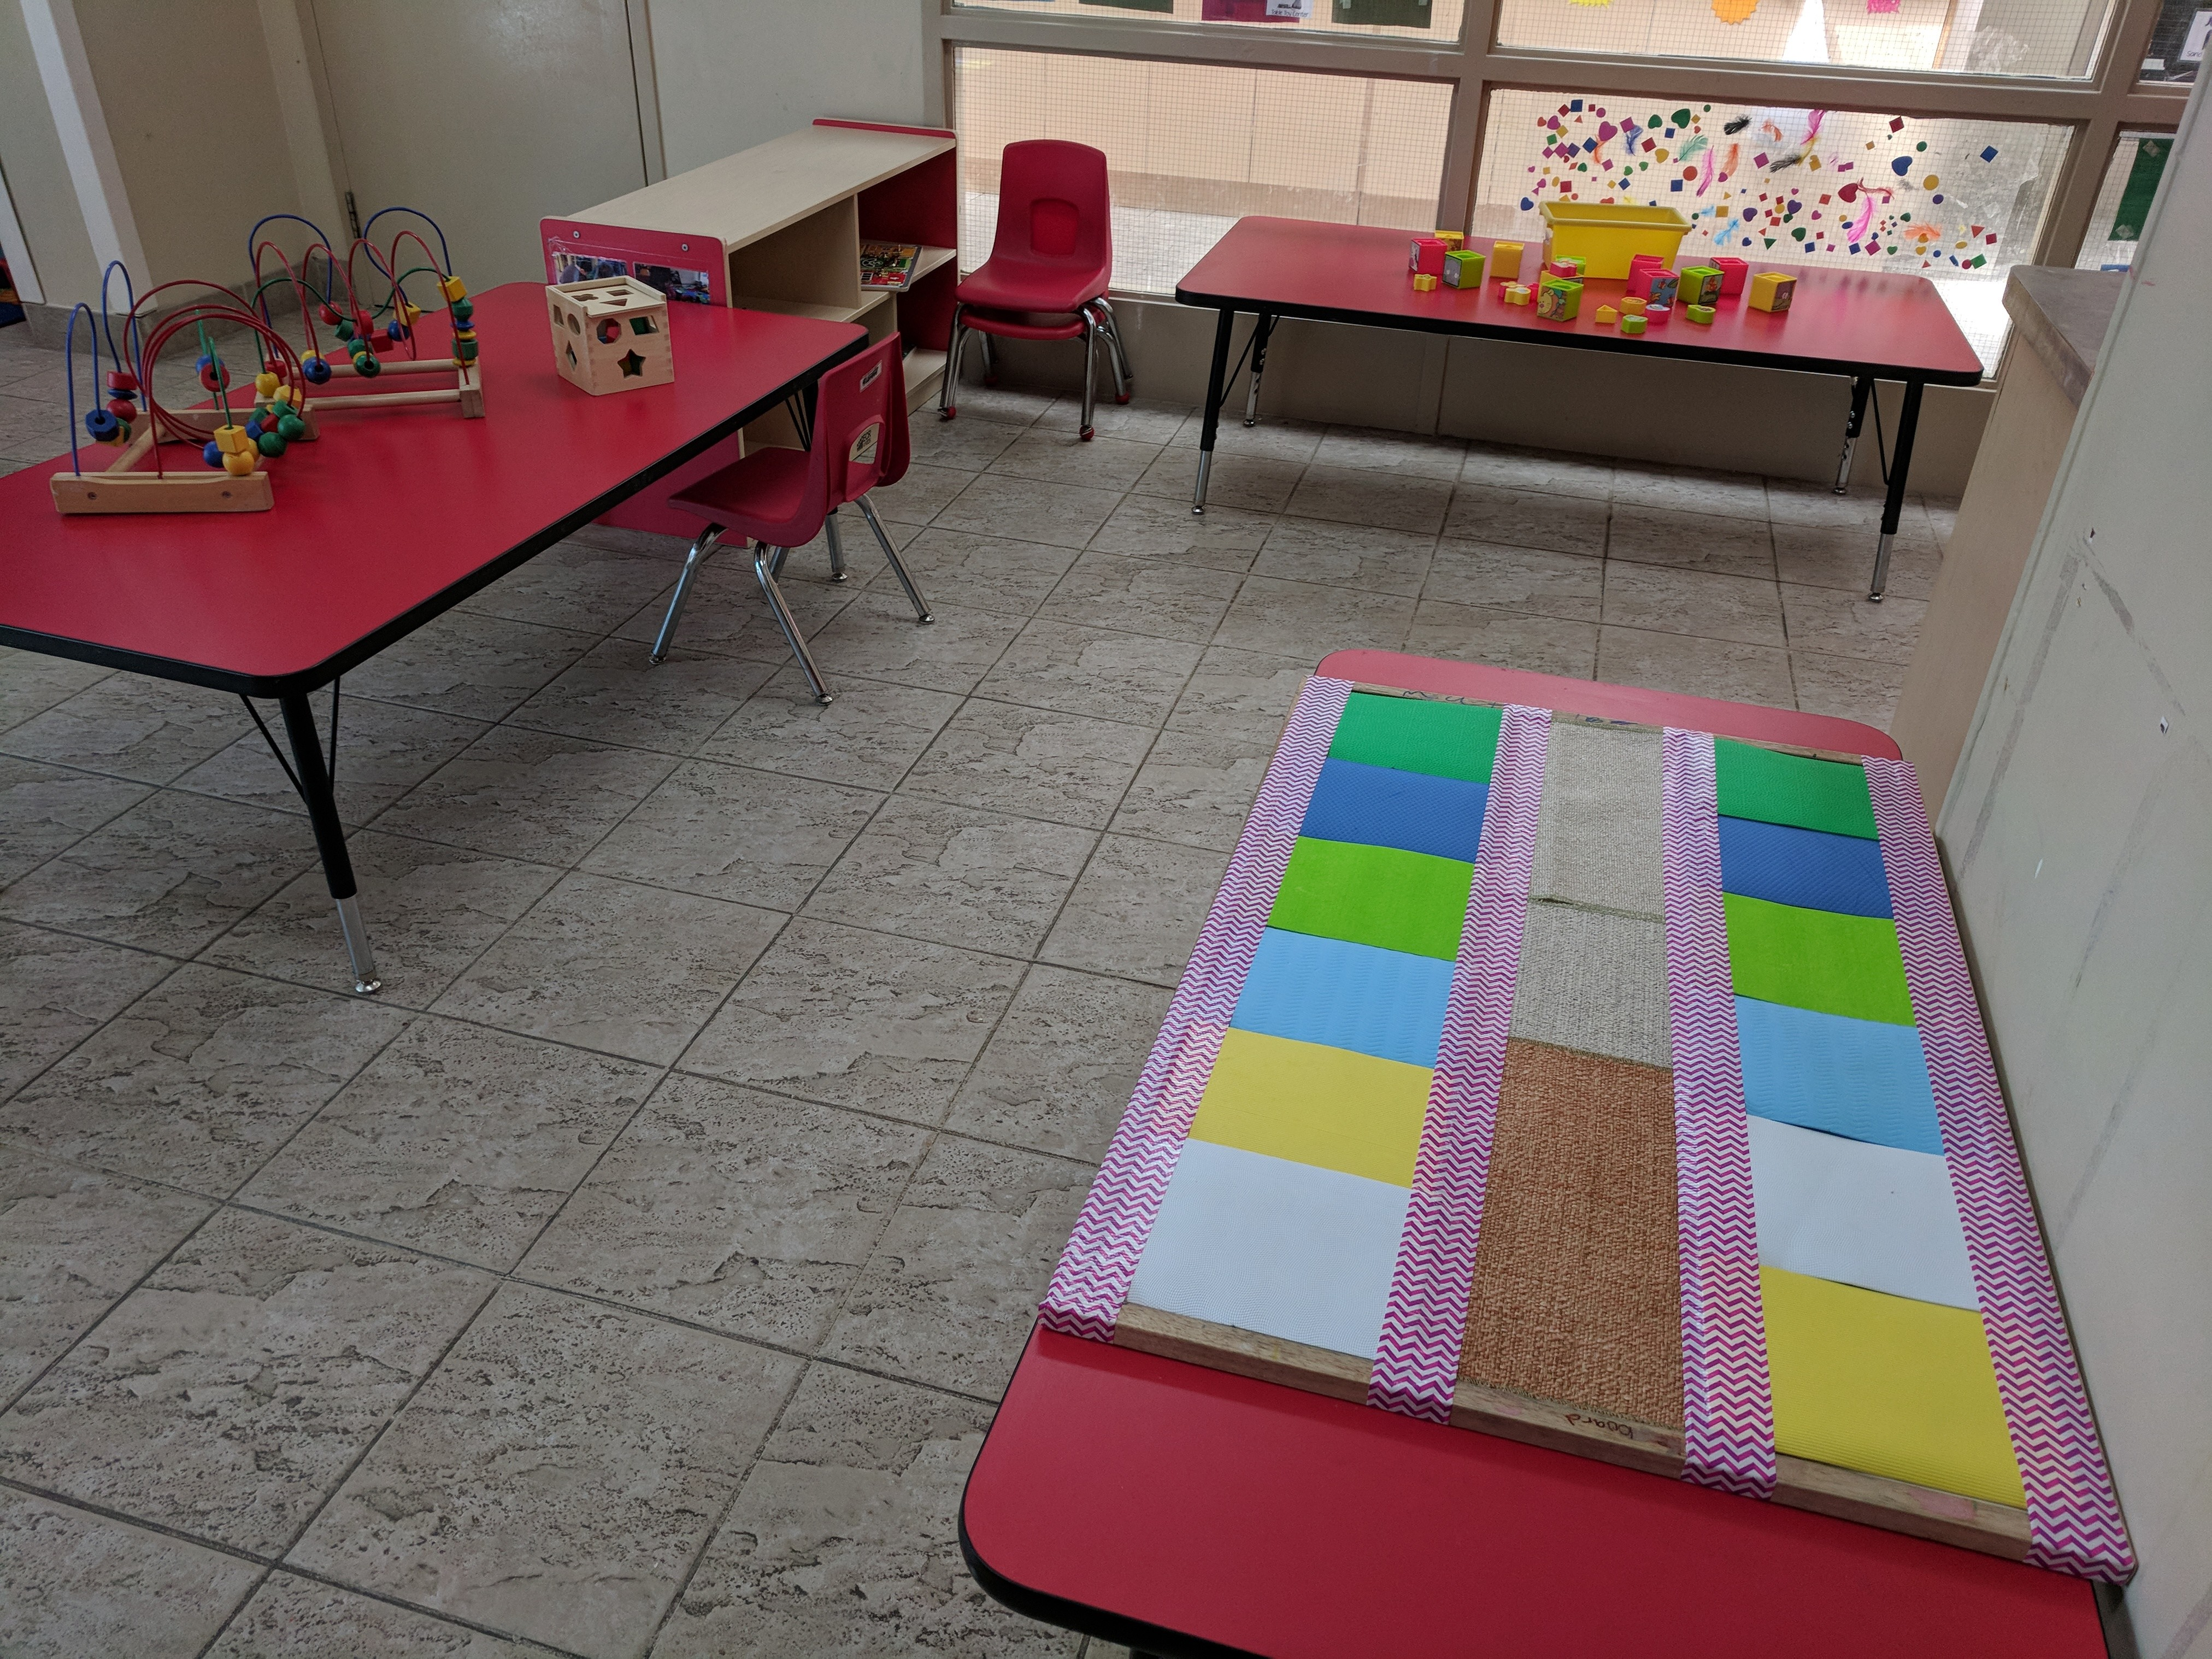 Richmond Hill Daycare   Storytime Childcare Gallery   New Facility